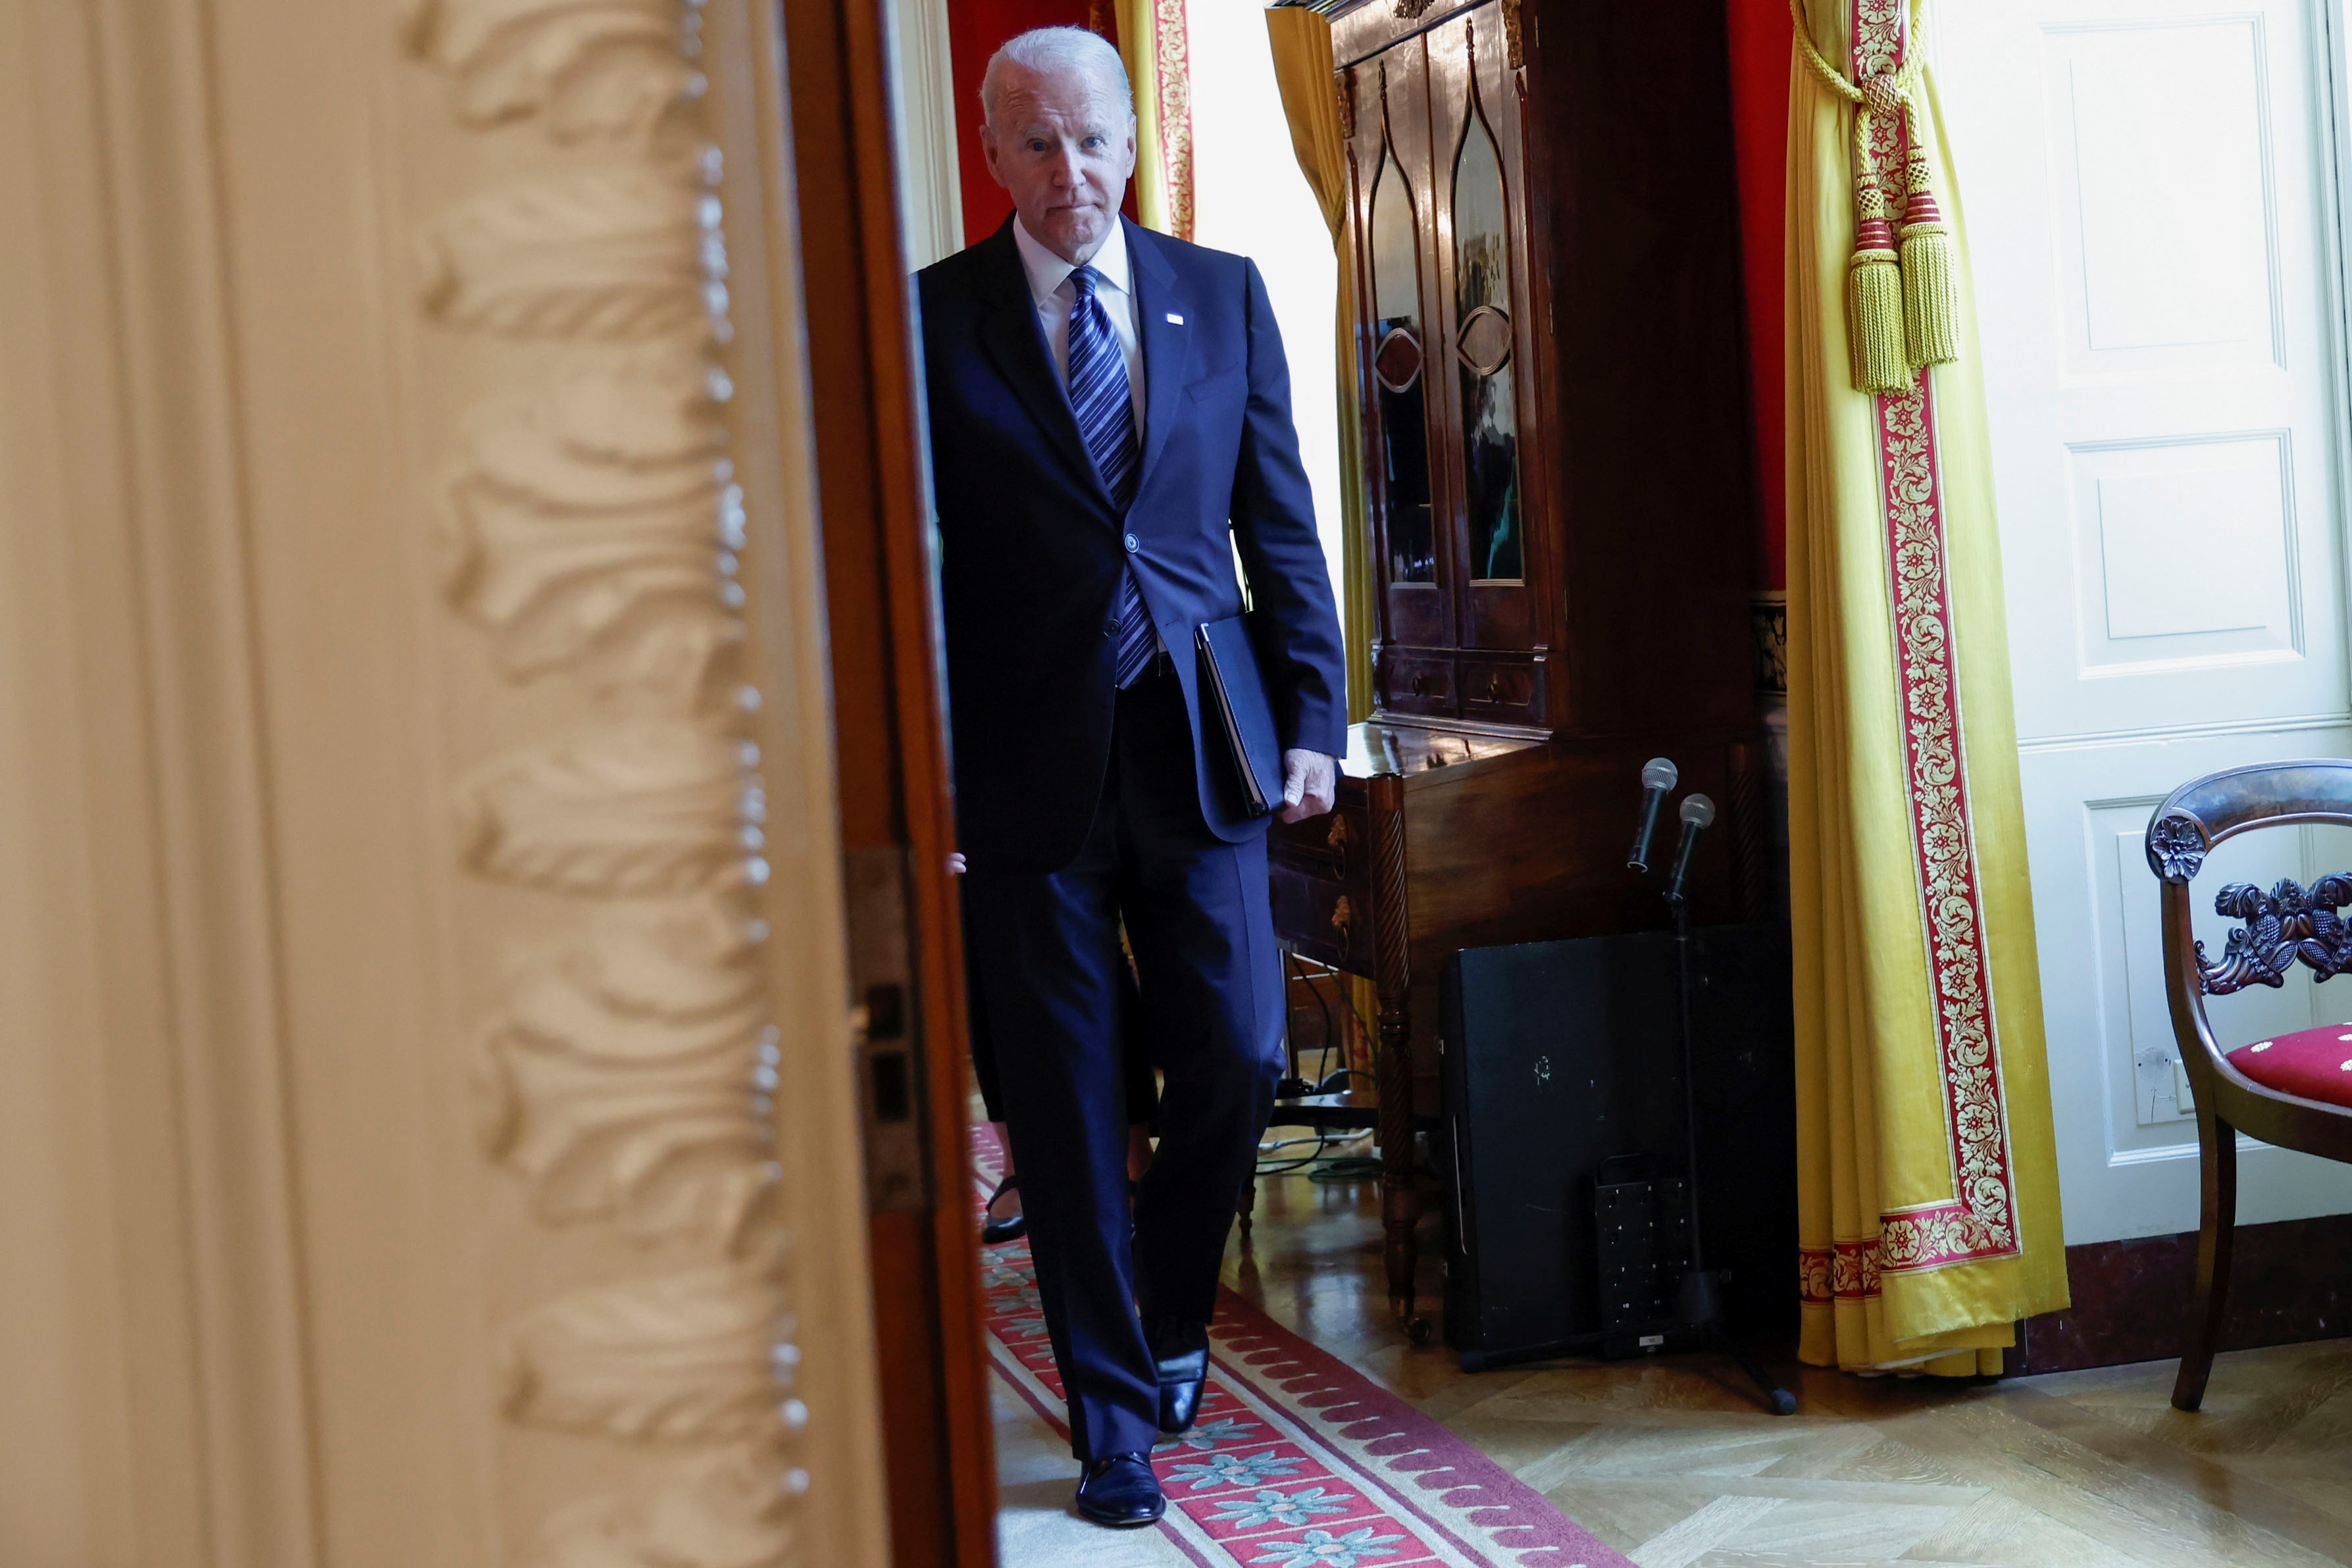 U.S. President Joe Biden walks to deliver remarks after a roundtable discussion with advisors on steps to curtail U.S. gun violence, at the White House in Washington, U.S. June 23, 2021. REUTERS/Jonathan Ernst